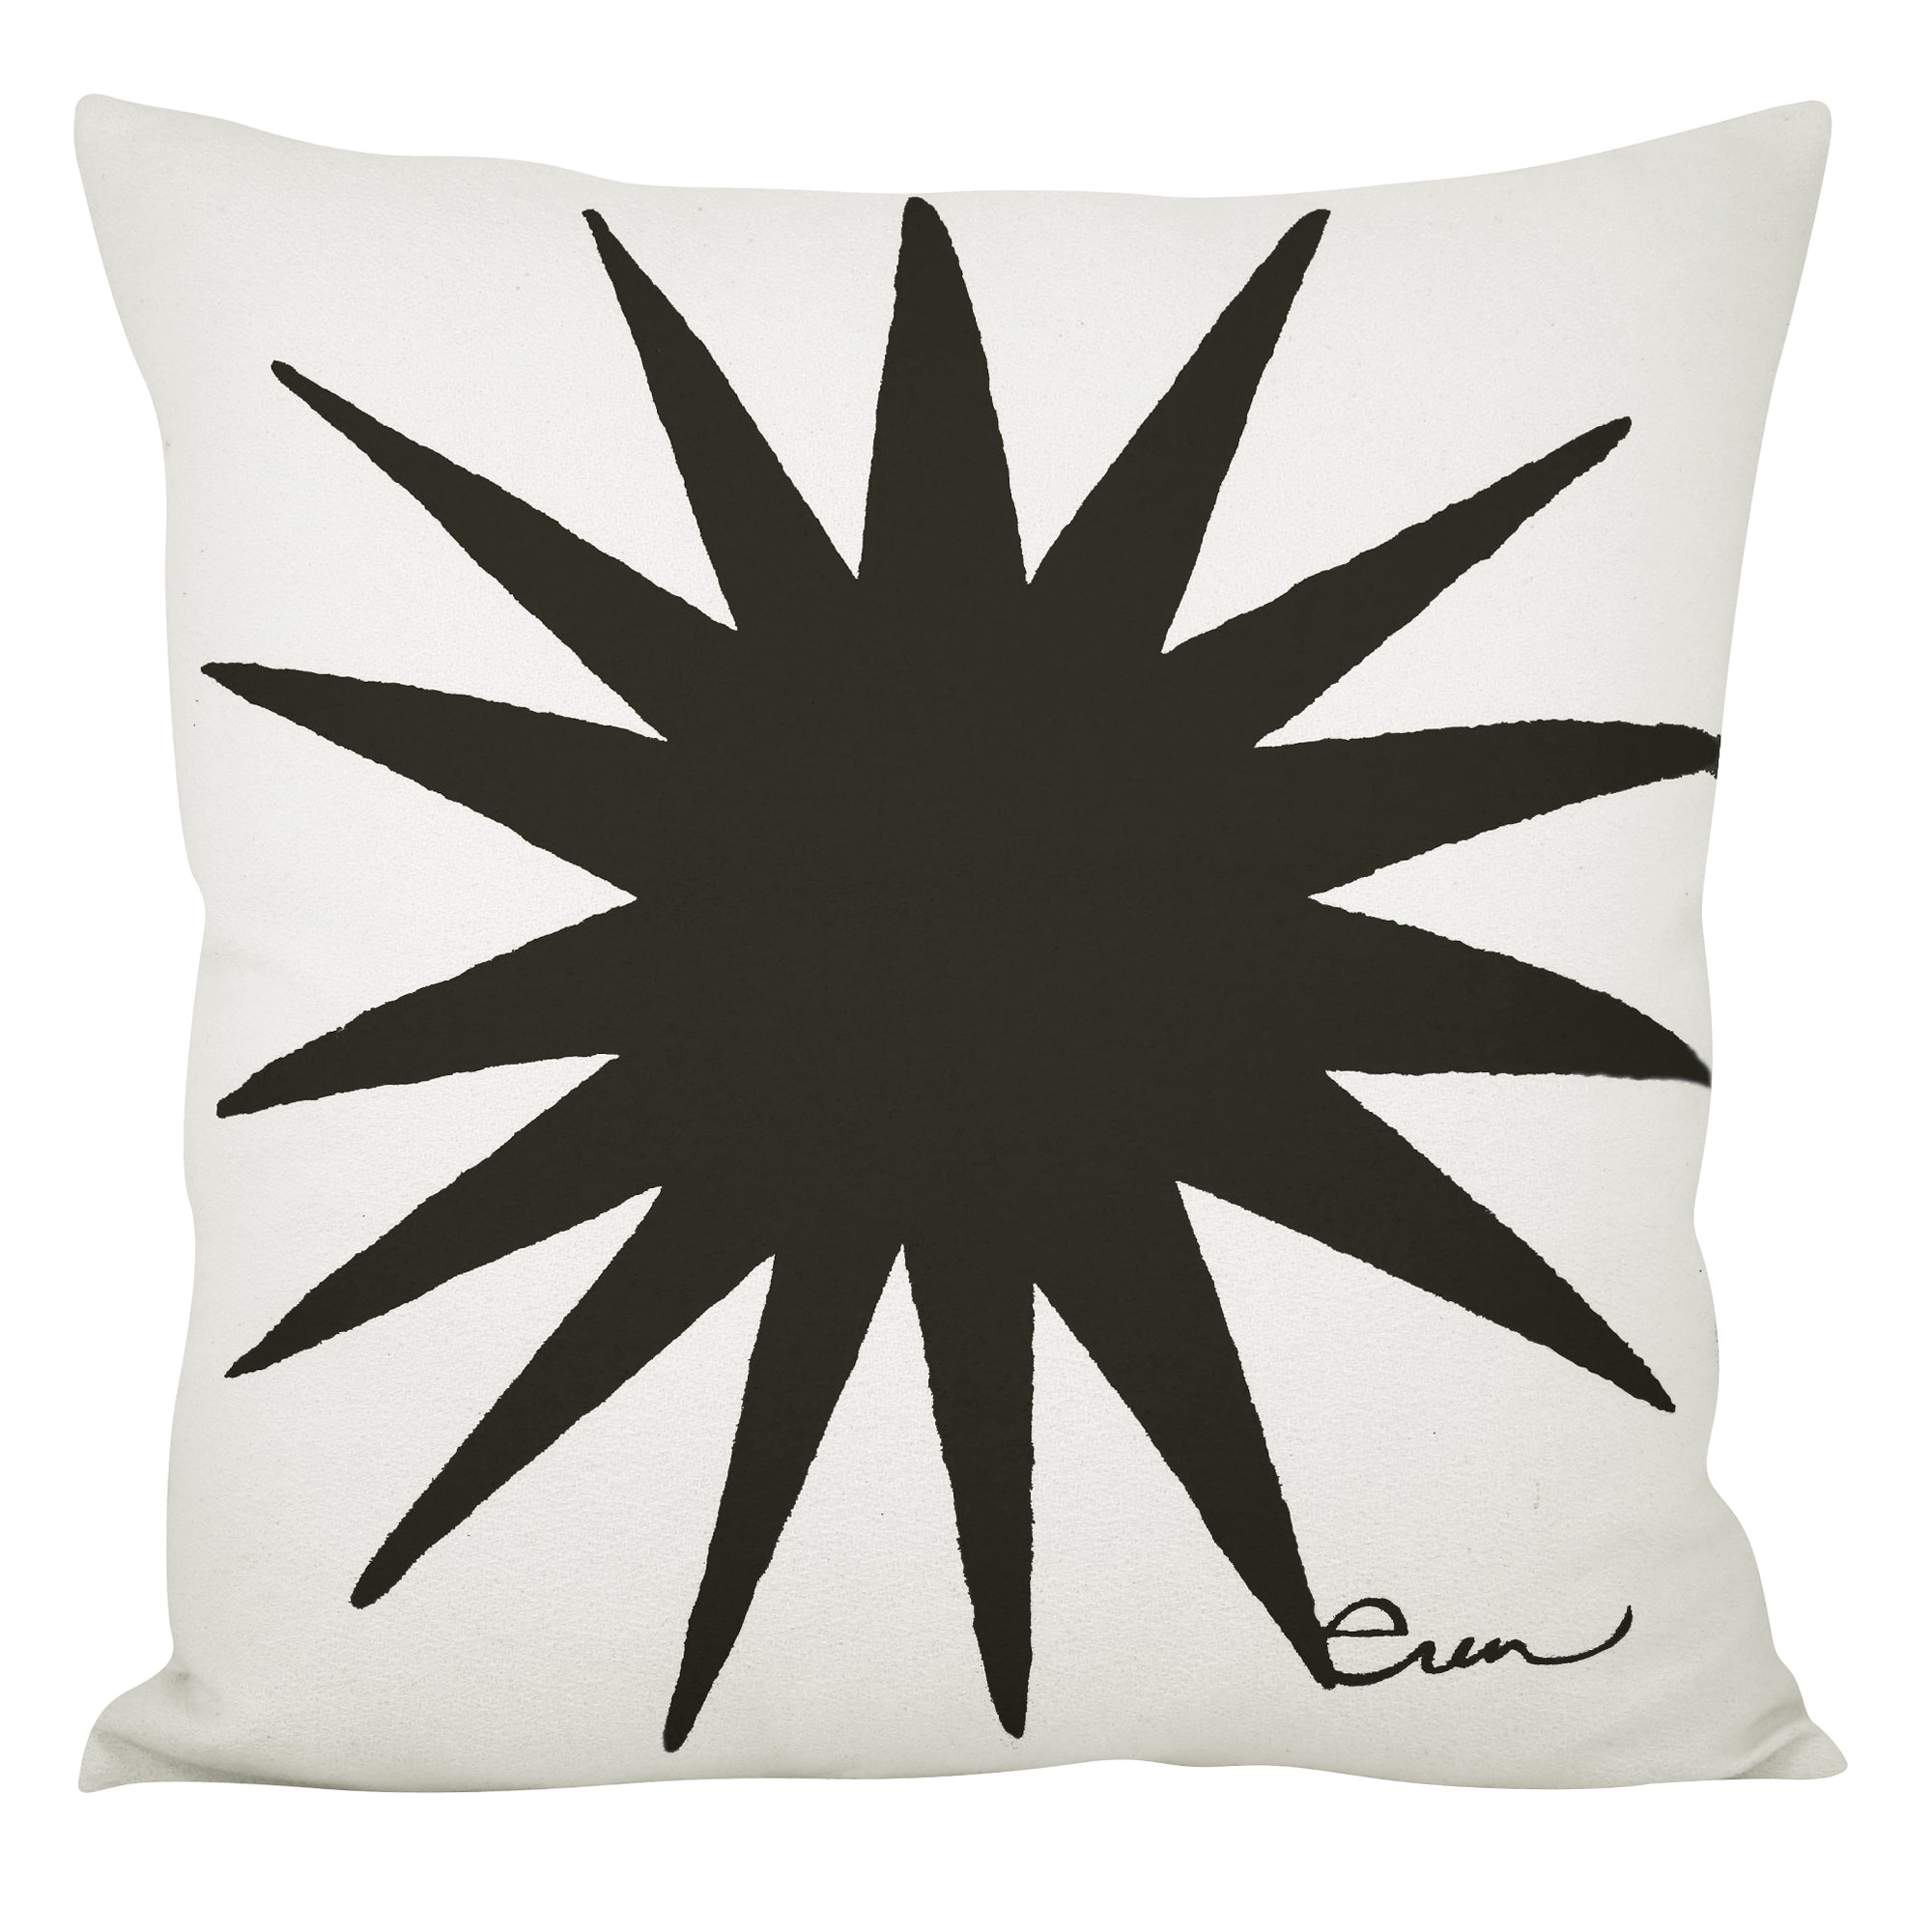 BURST PILLOW COVER IN BLACK